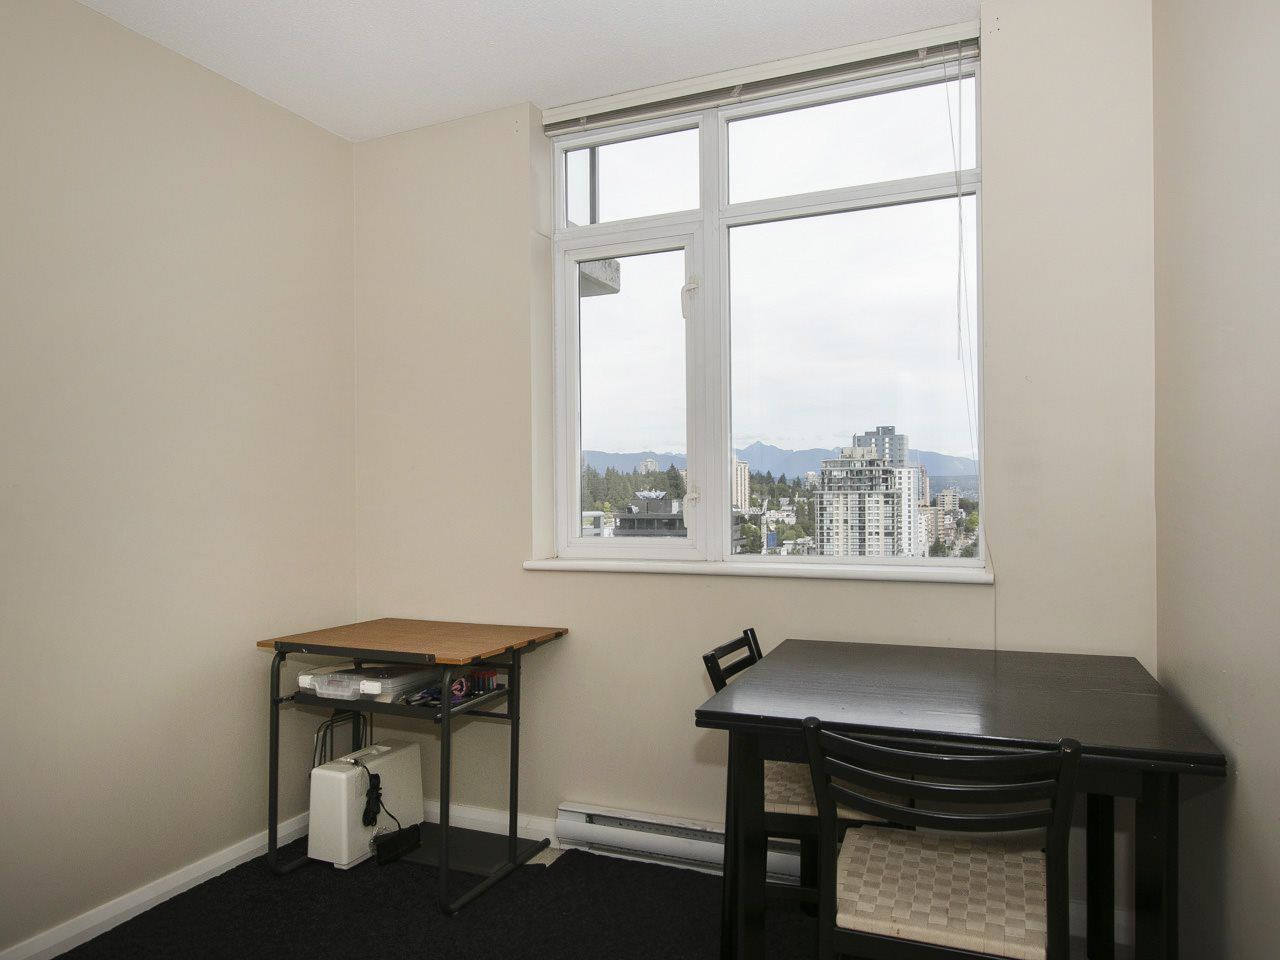 """Photo 6: Photos: 3003 888 CARNARVON Street in New Westminster: Downtown NW Condo for sale in """"Marinus at Plaza 88"""" : MLS®# R2199614"""